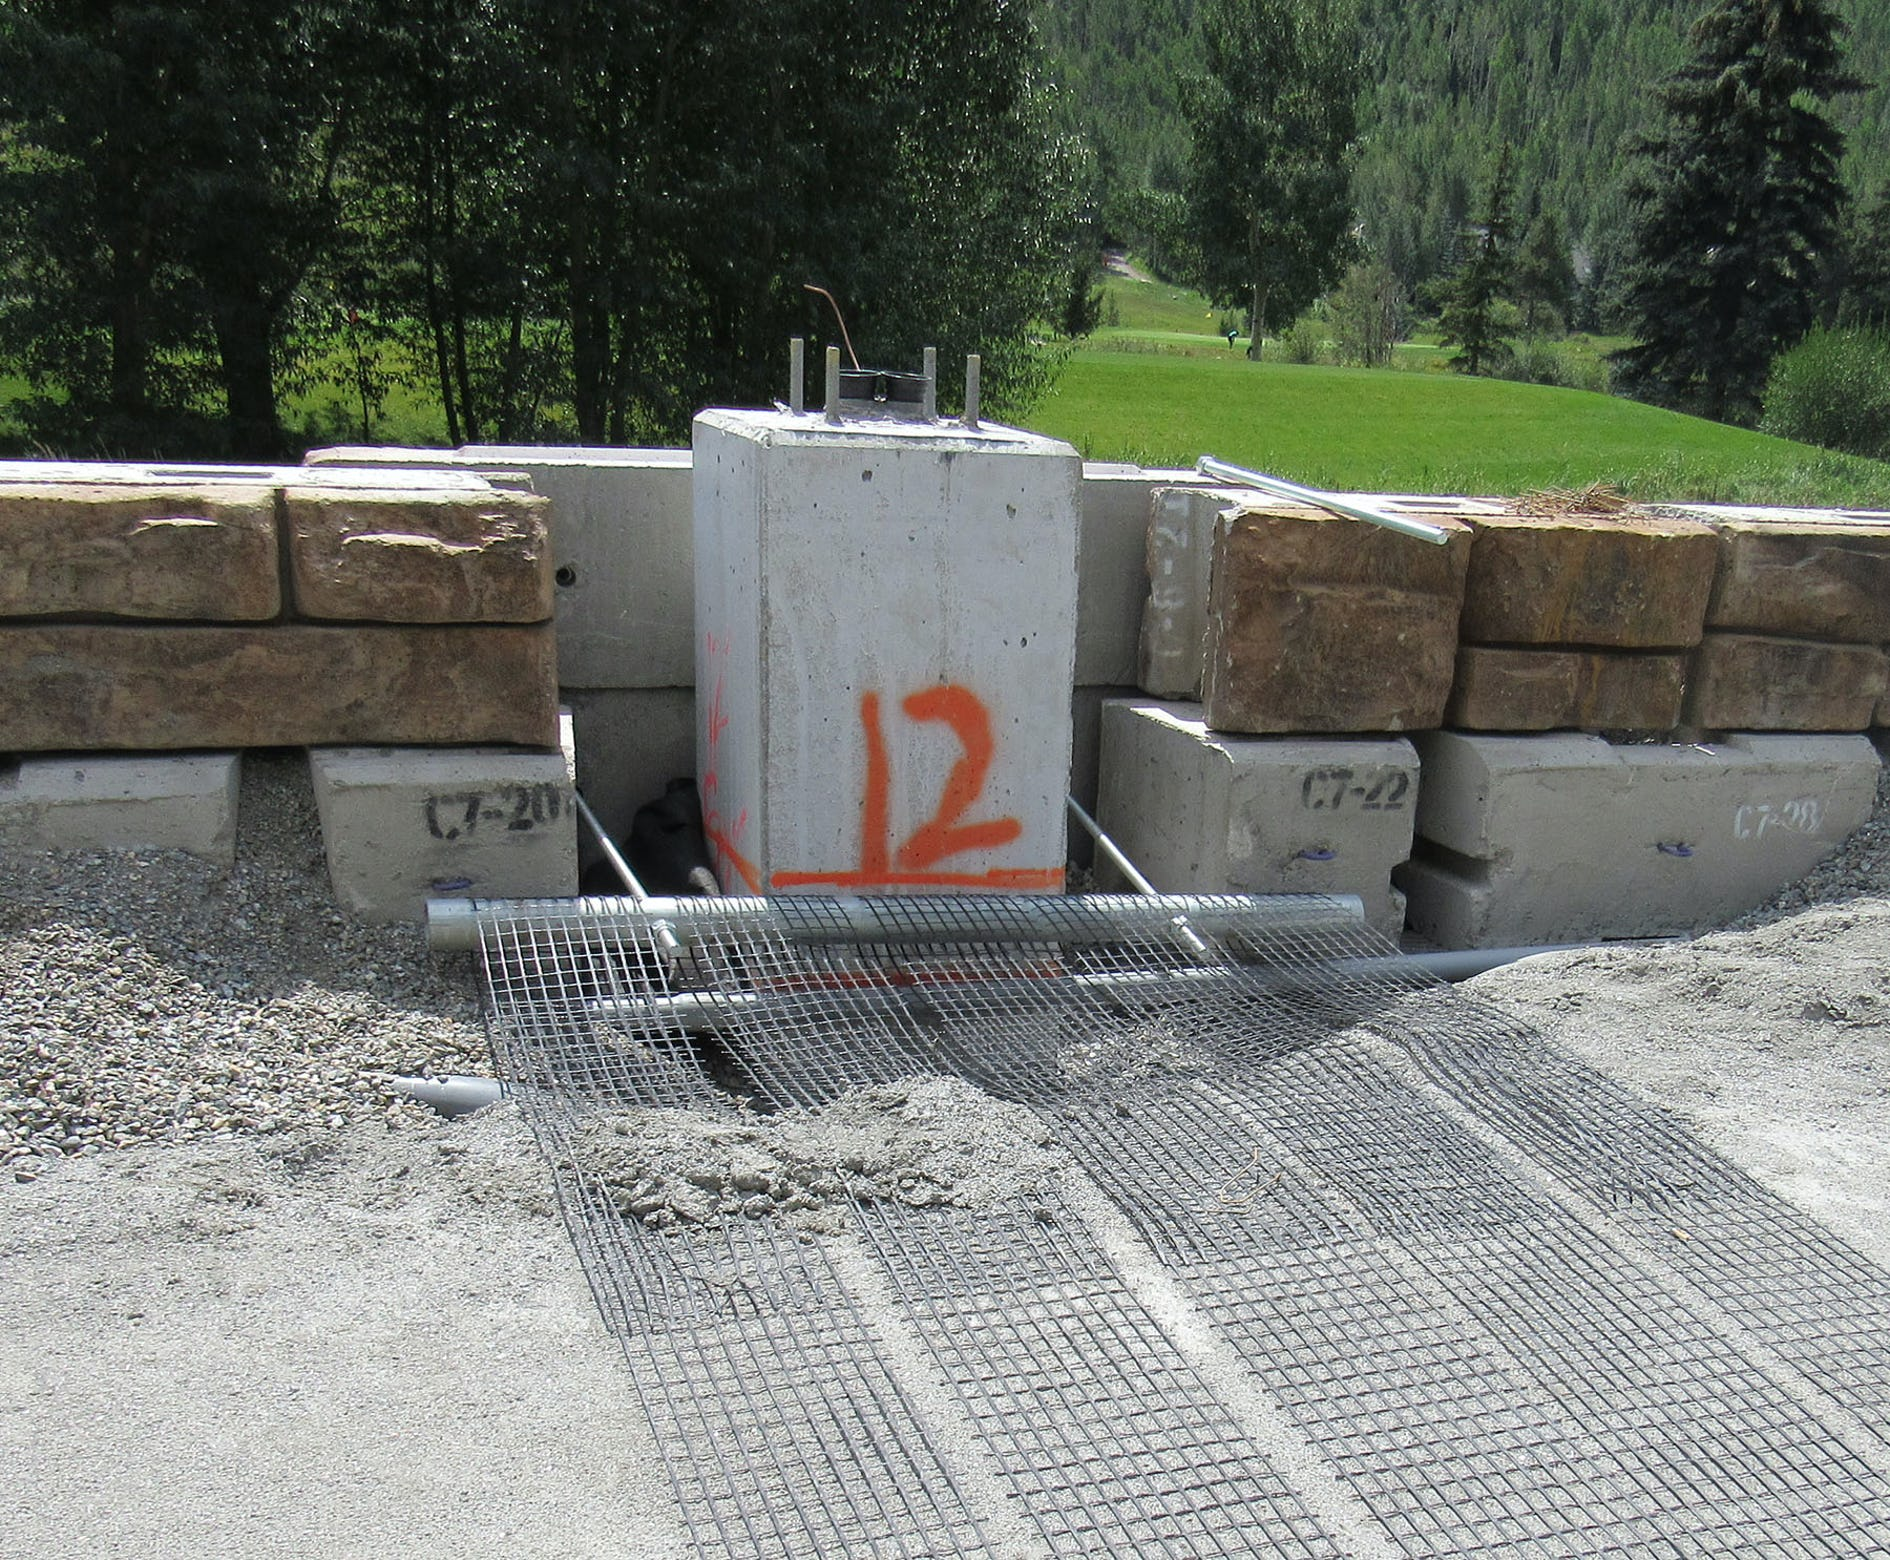 RR_Case-187_Signature-Stone_Vail-Chain-Up-Station_2.jpeg